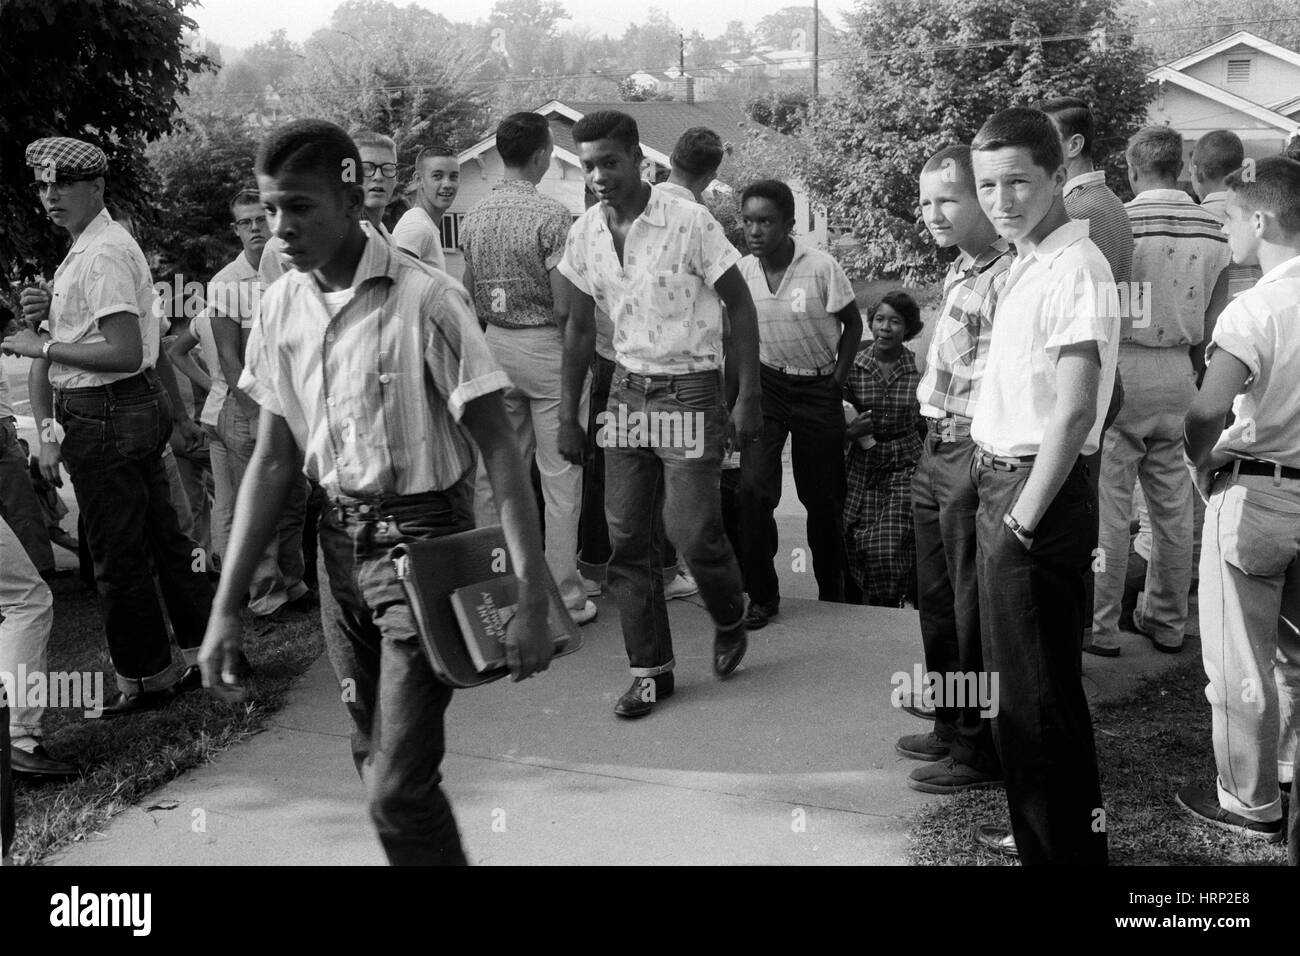 Desegregated School, Tennessee, 1956 - Stock Image